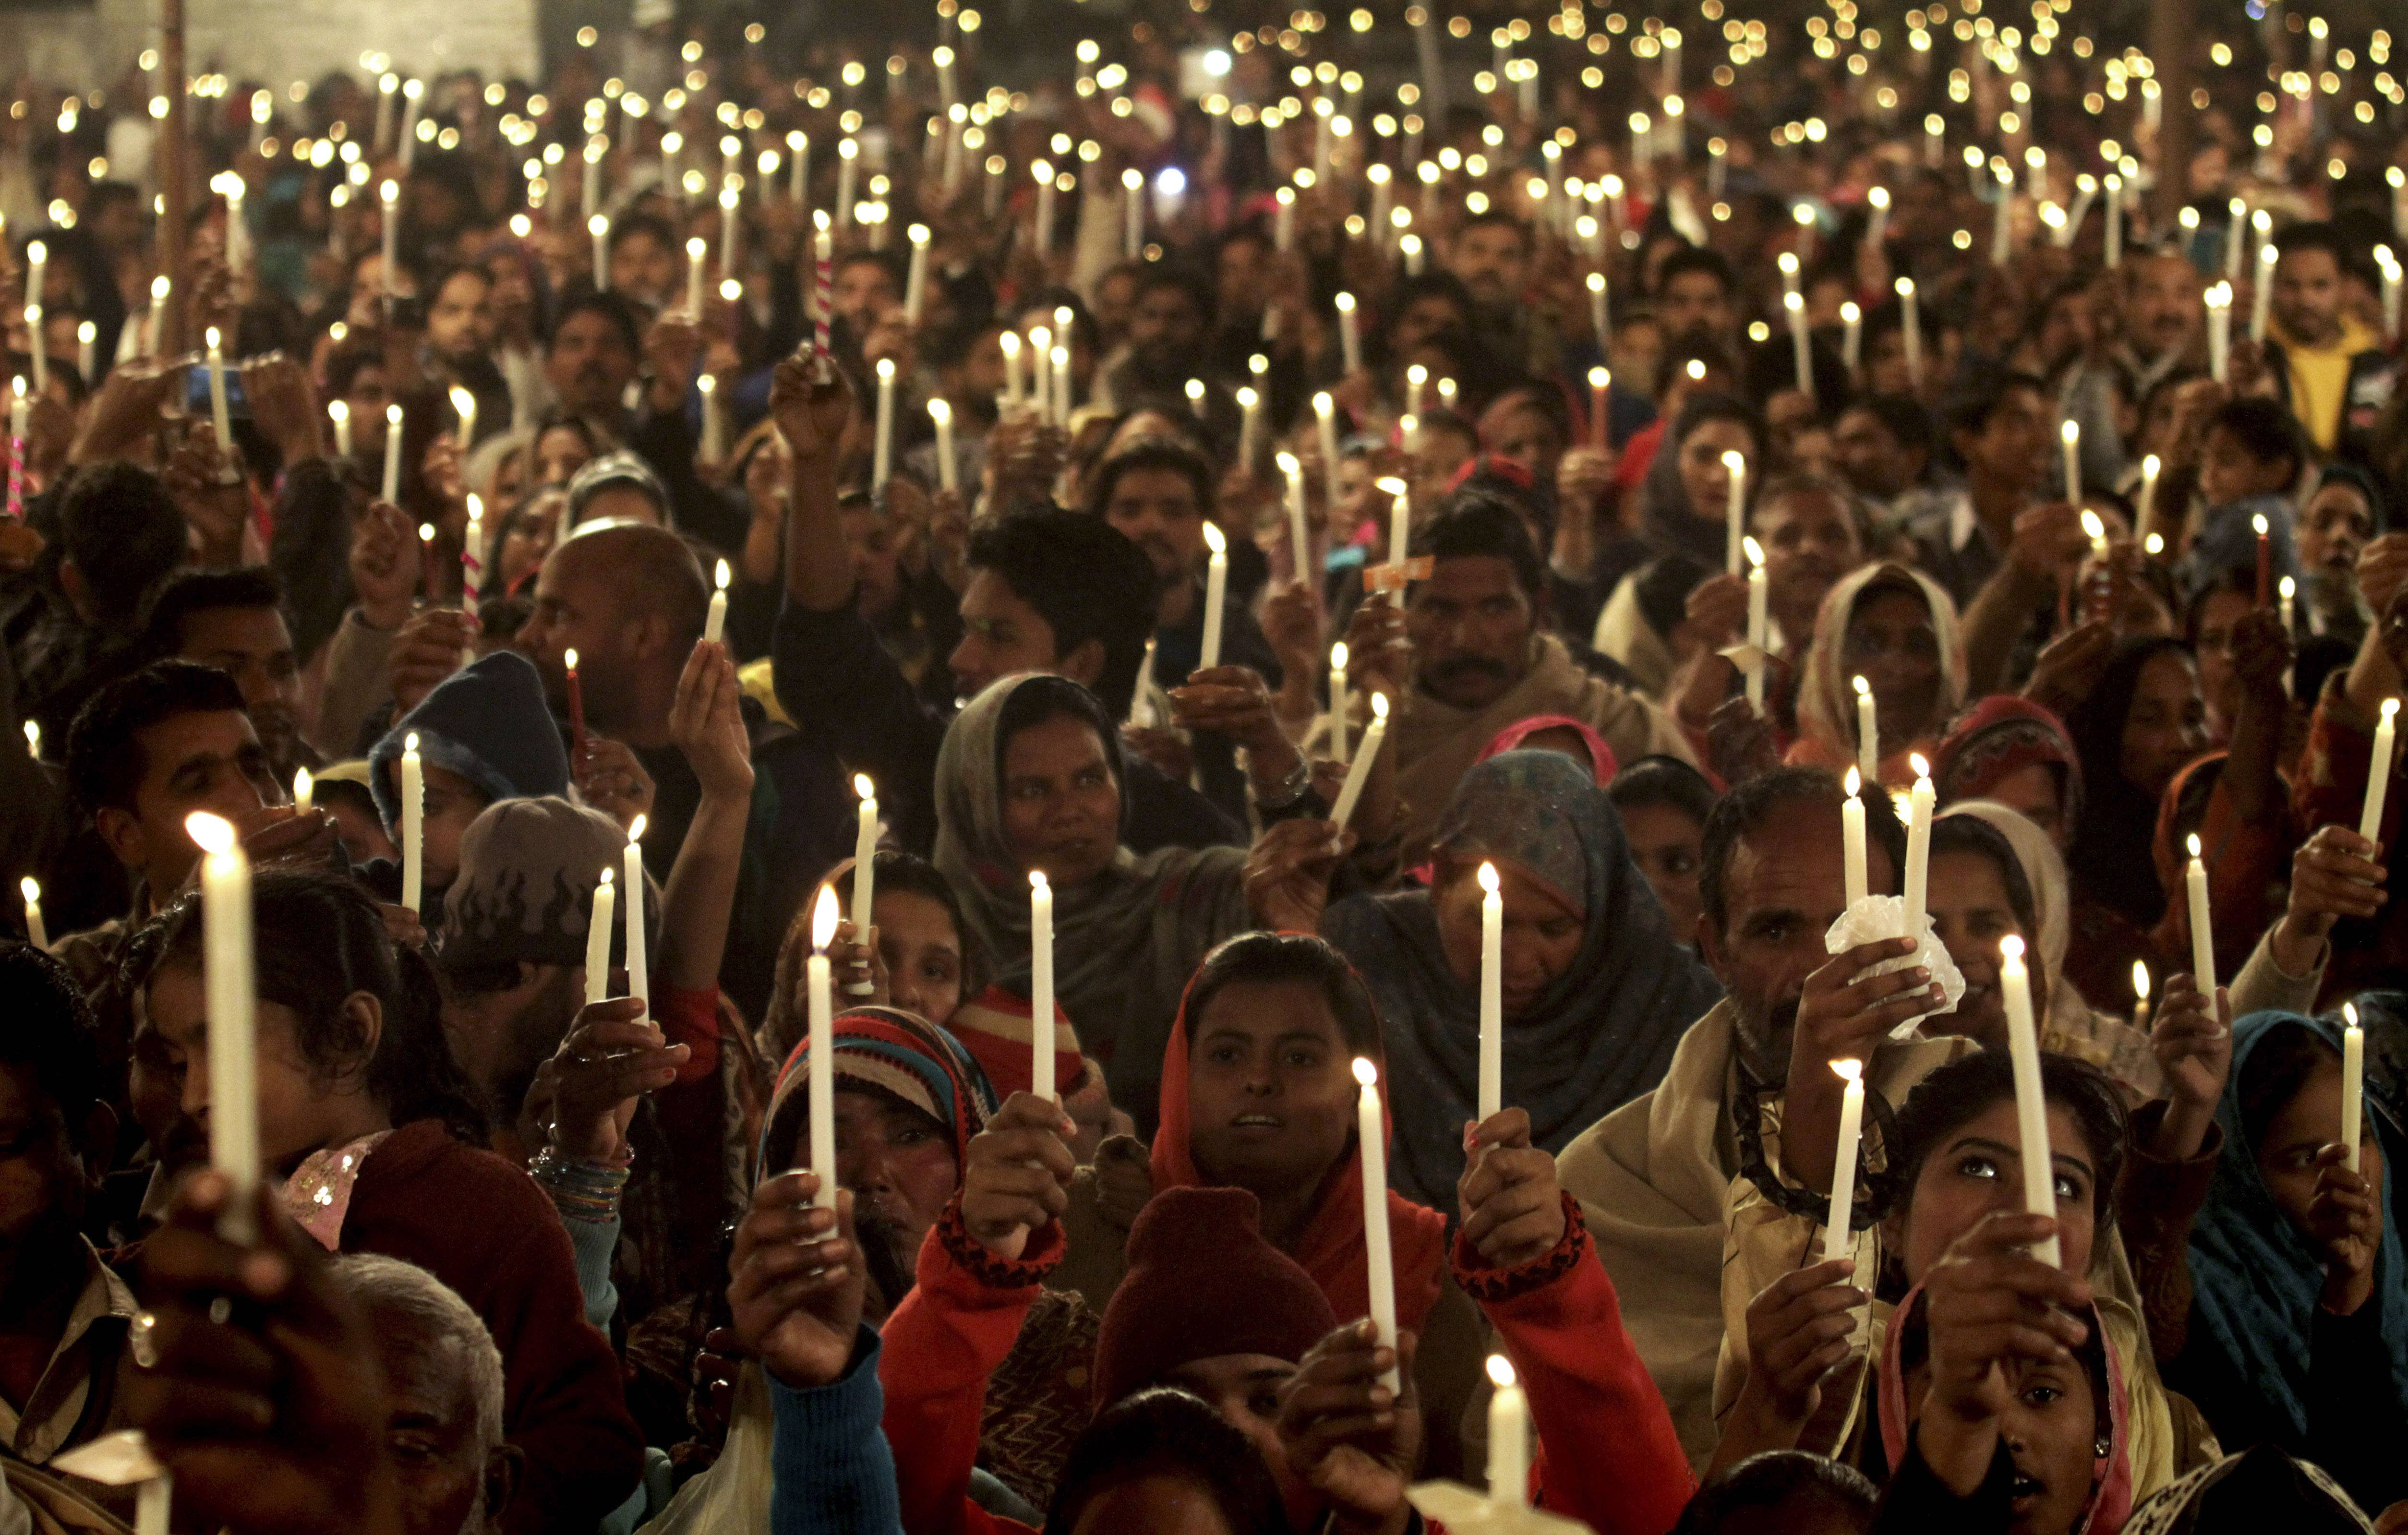 Pakistani Christians hold up candles to pay tribute to the victims killed in Tuesday's Taliban attack on a military-run school in Peshawar, as they participate in candle light vigil Wednesday, Dec. 17, 2014 in Lahore, Pakistan.